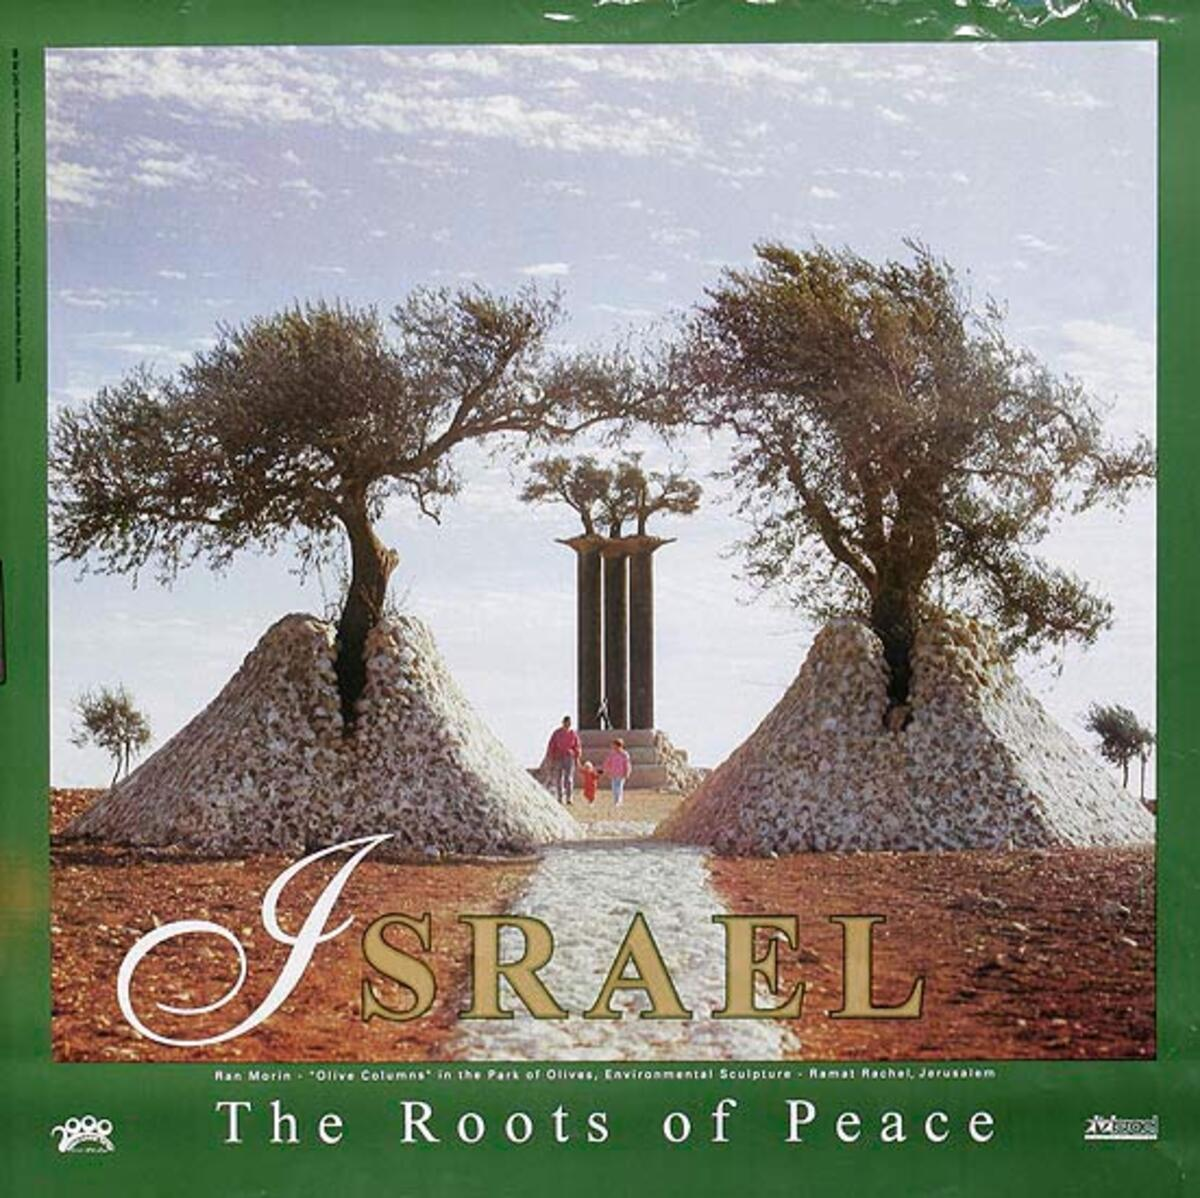 The Roots of Peace Original Israel Travel Poster